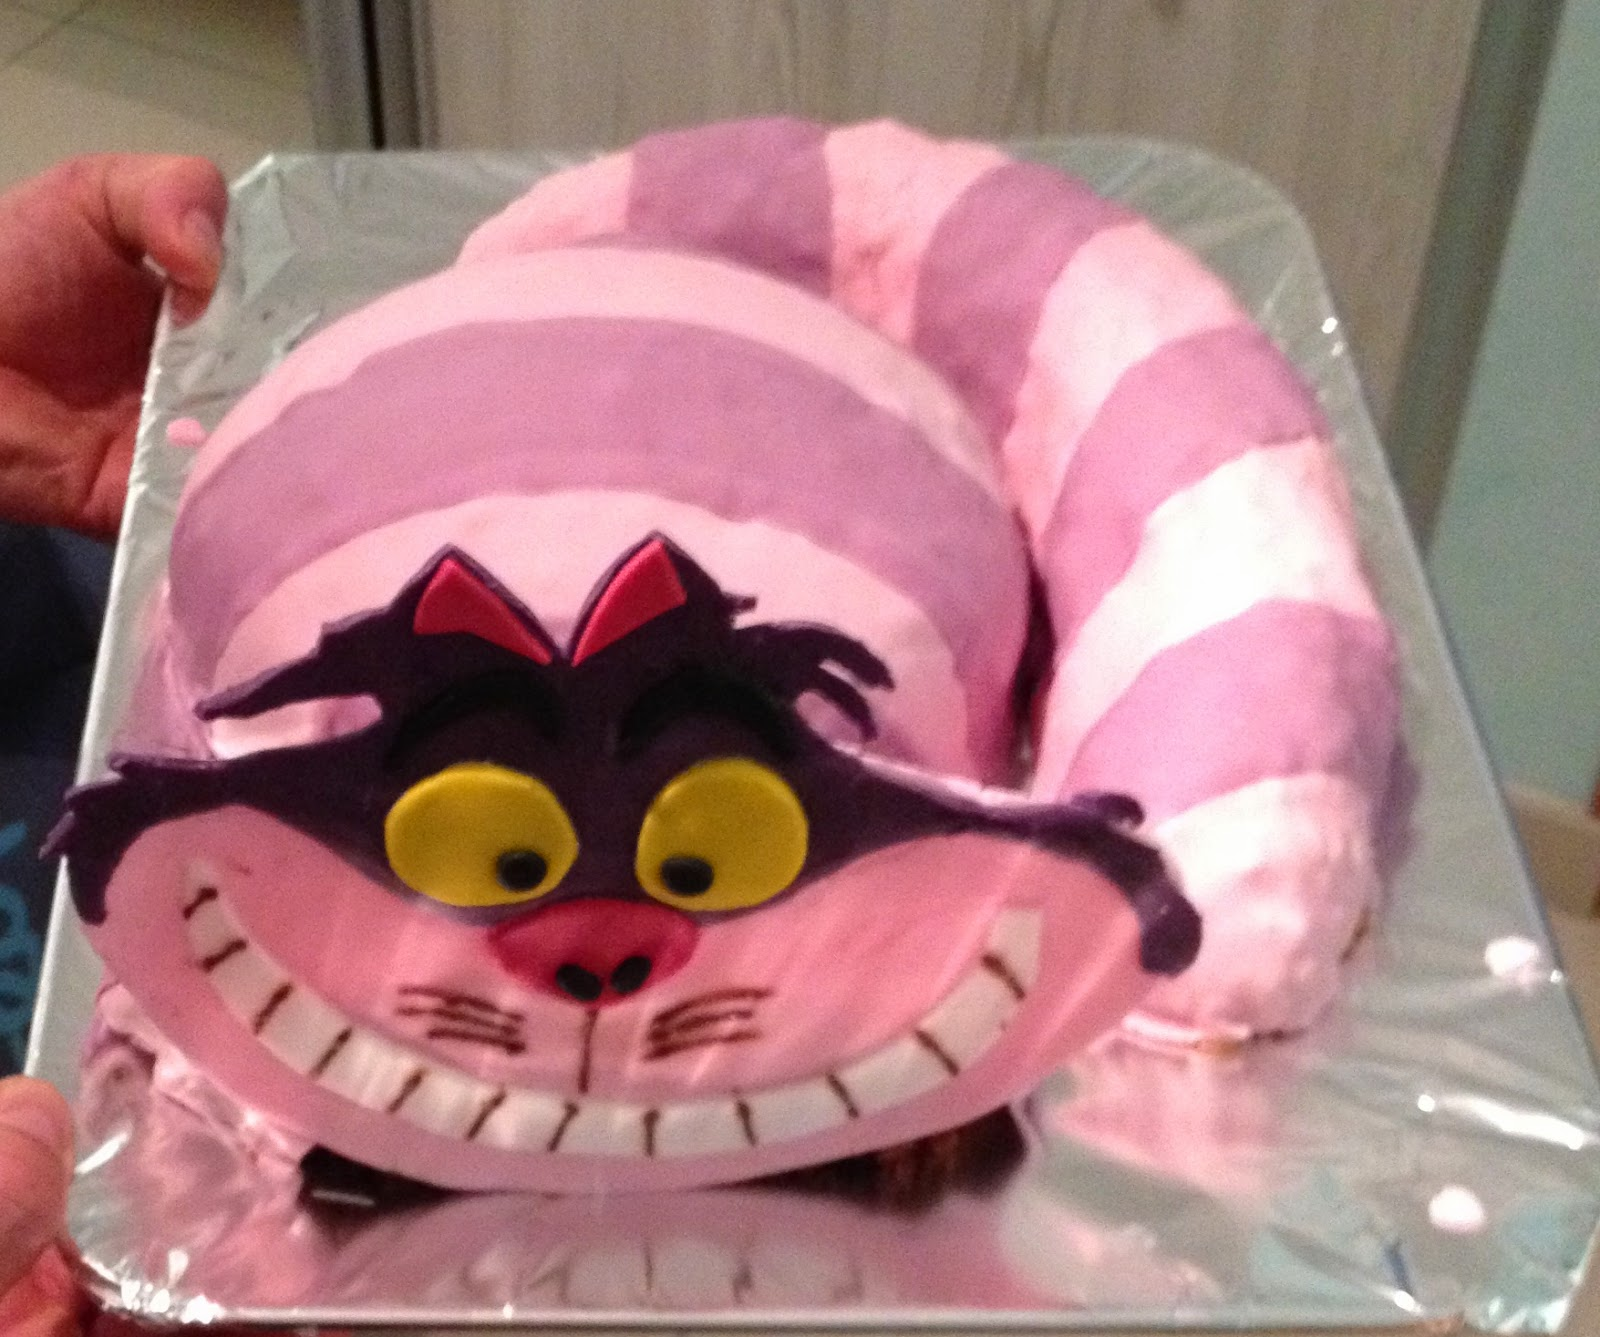 cheshire chat Find great deals on ebay for cheshire cat plush in disney plush toys shop with confidence.